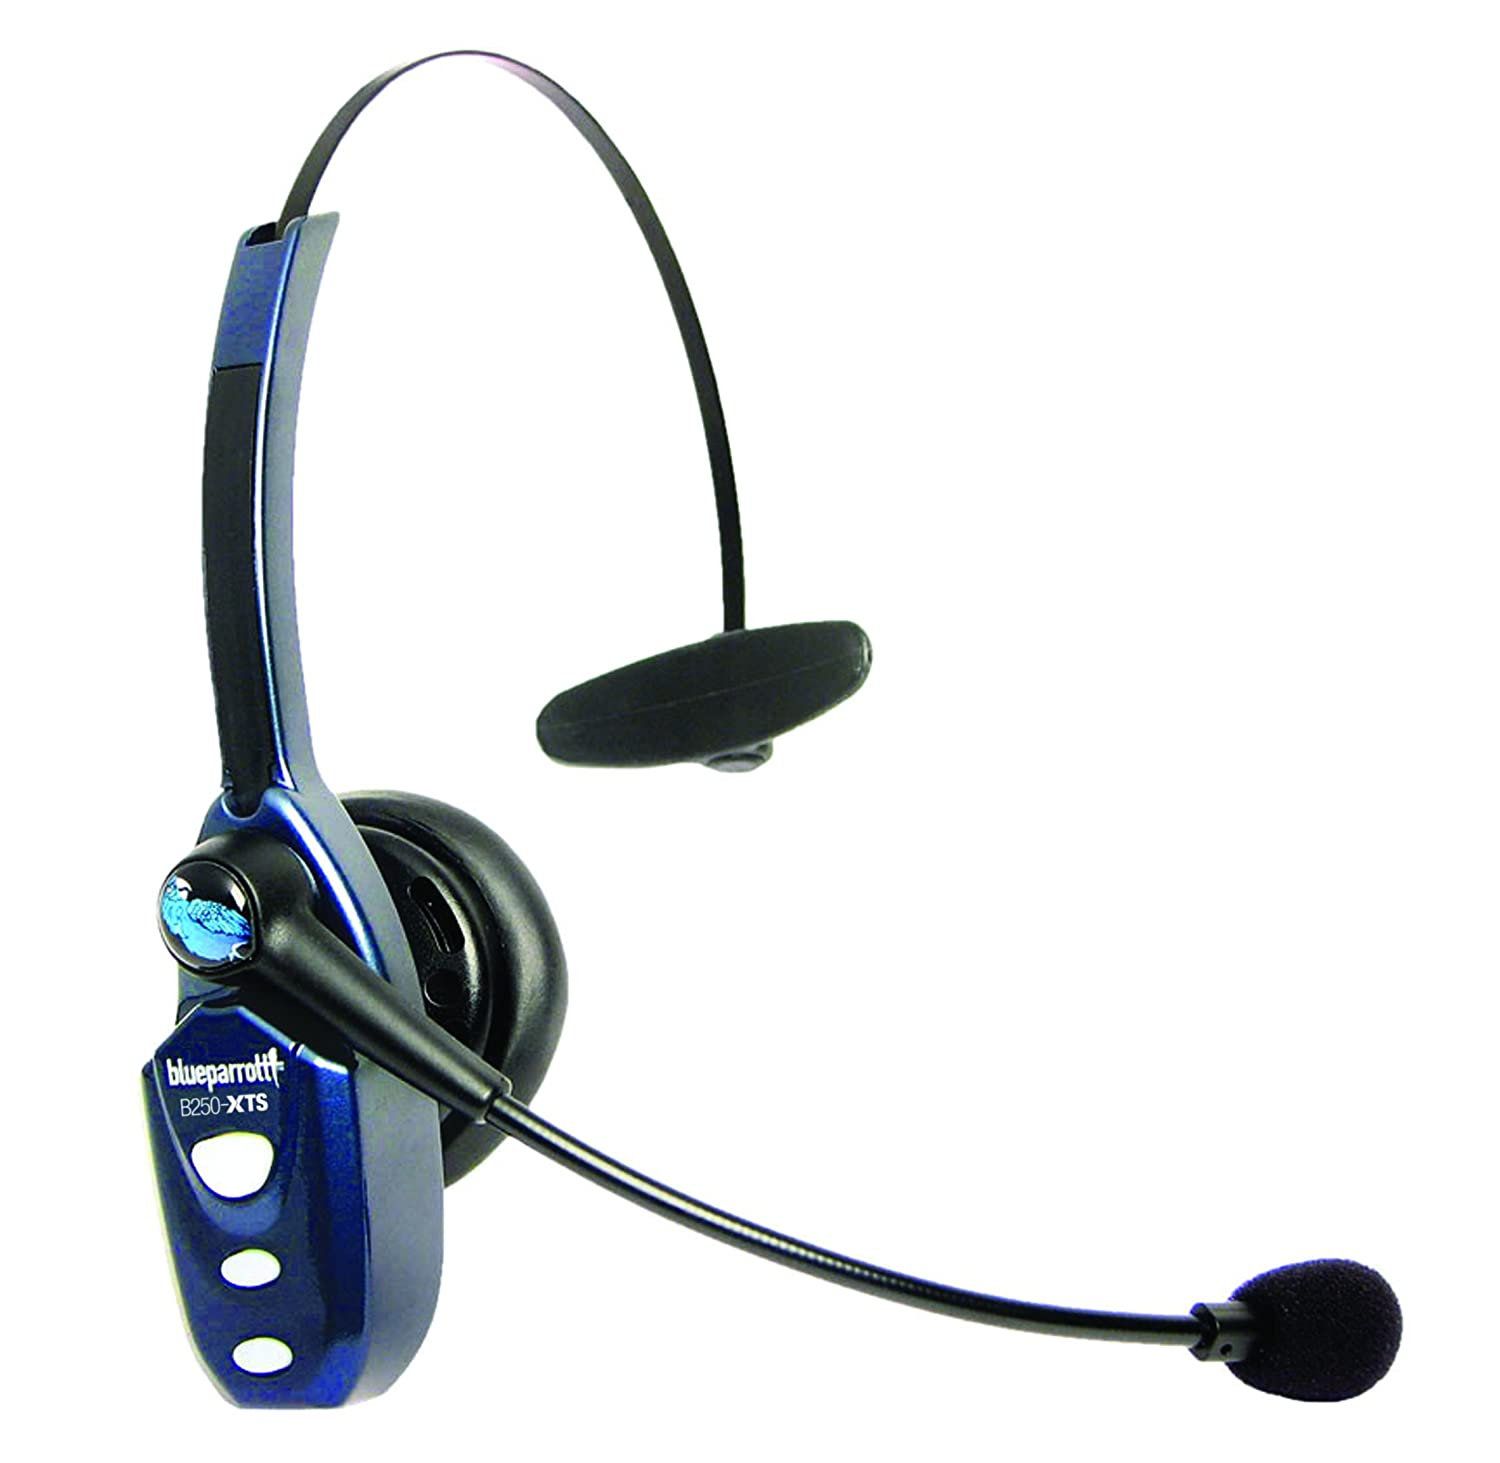 42471cf44c1 Amazon.com: BlueParrott Bluetooth Headset with Micro USB Charging (B250-XTS):  Cell Phones & Accessories